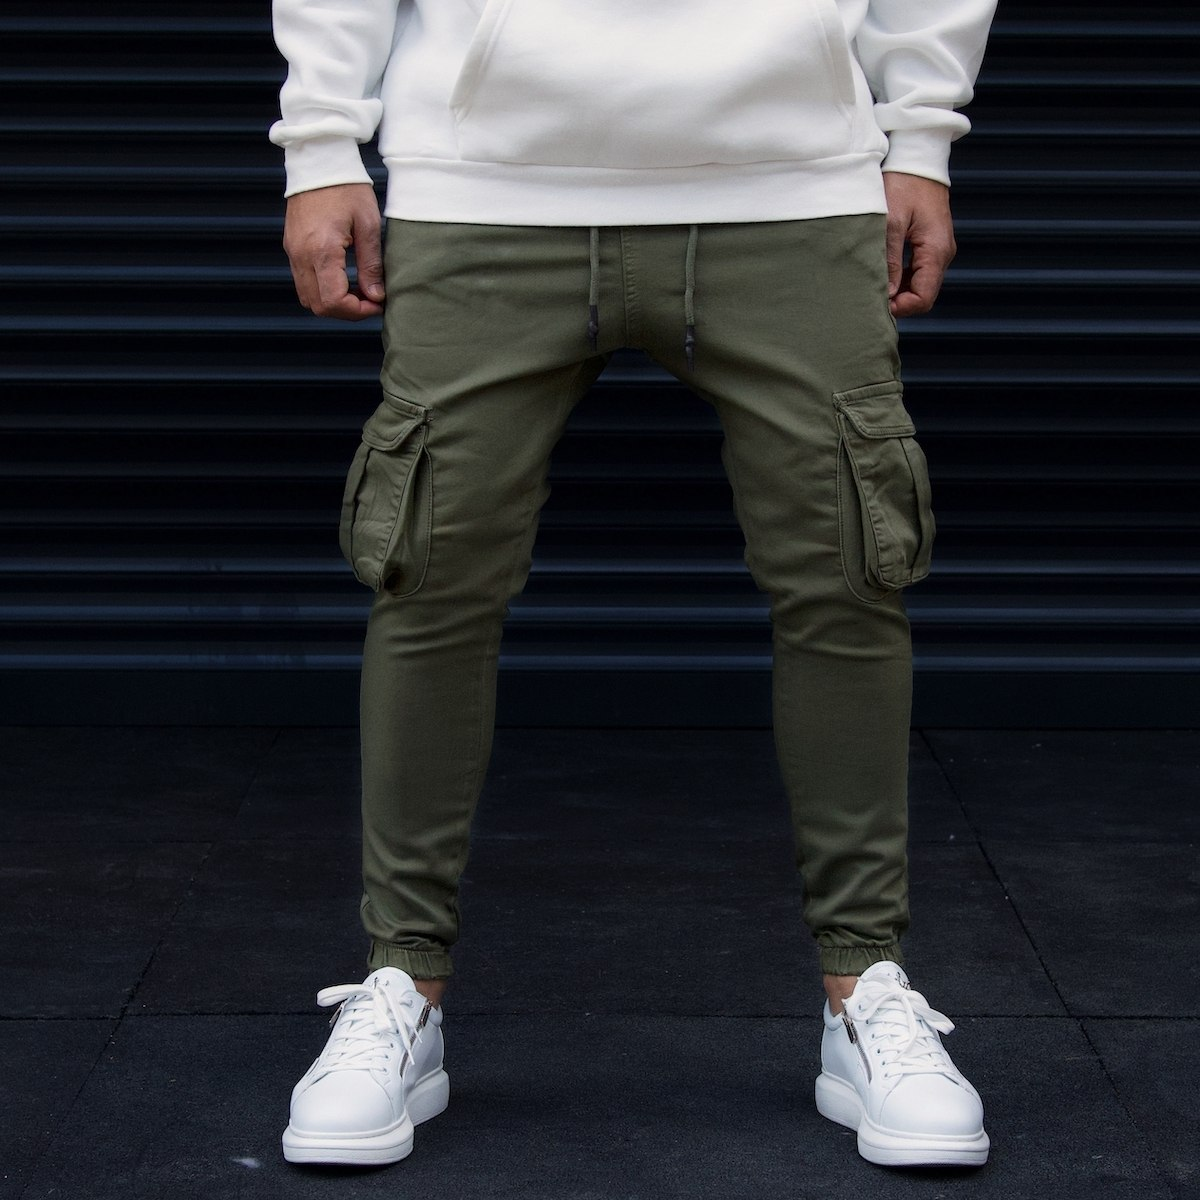 Men's Cargo Joggers With Pockets In Khaki